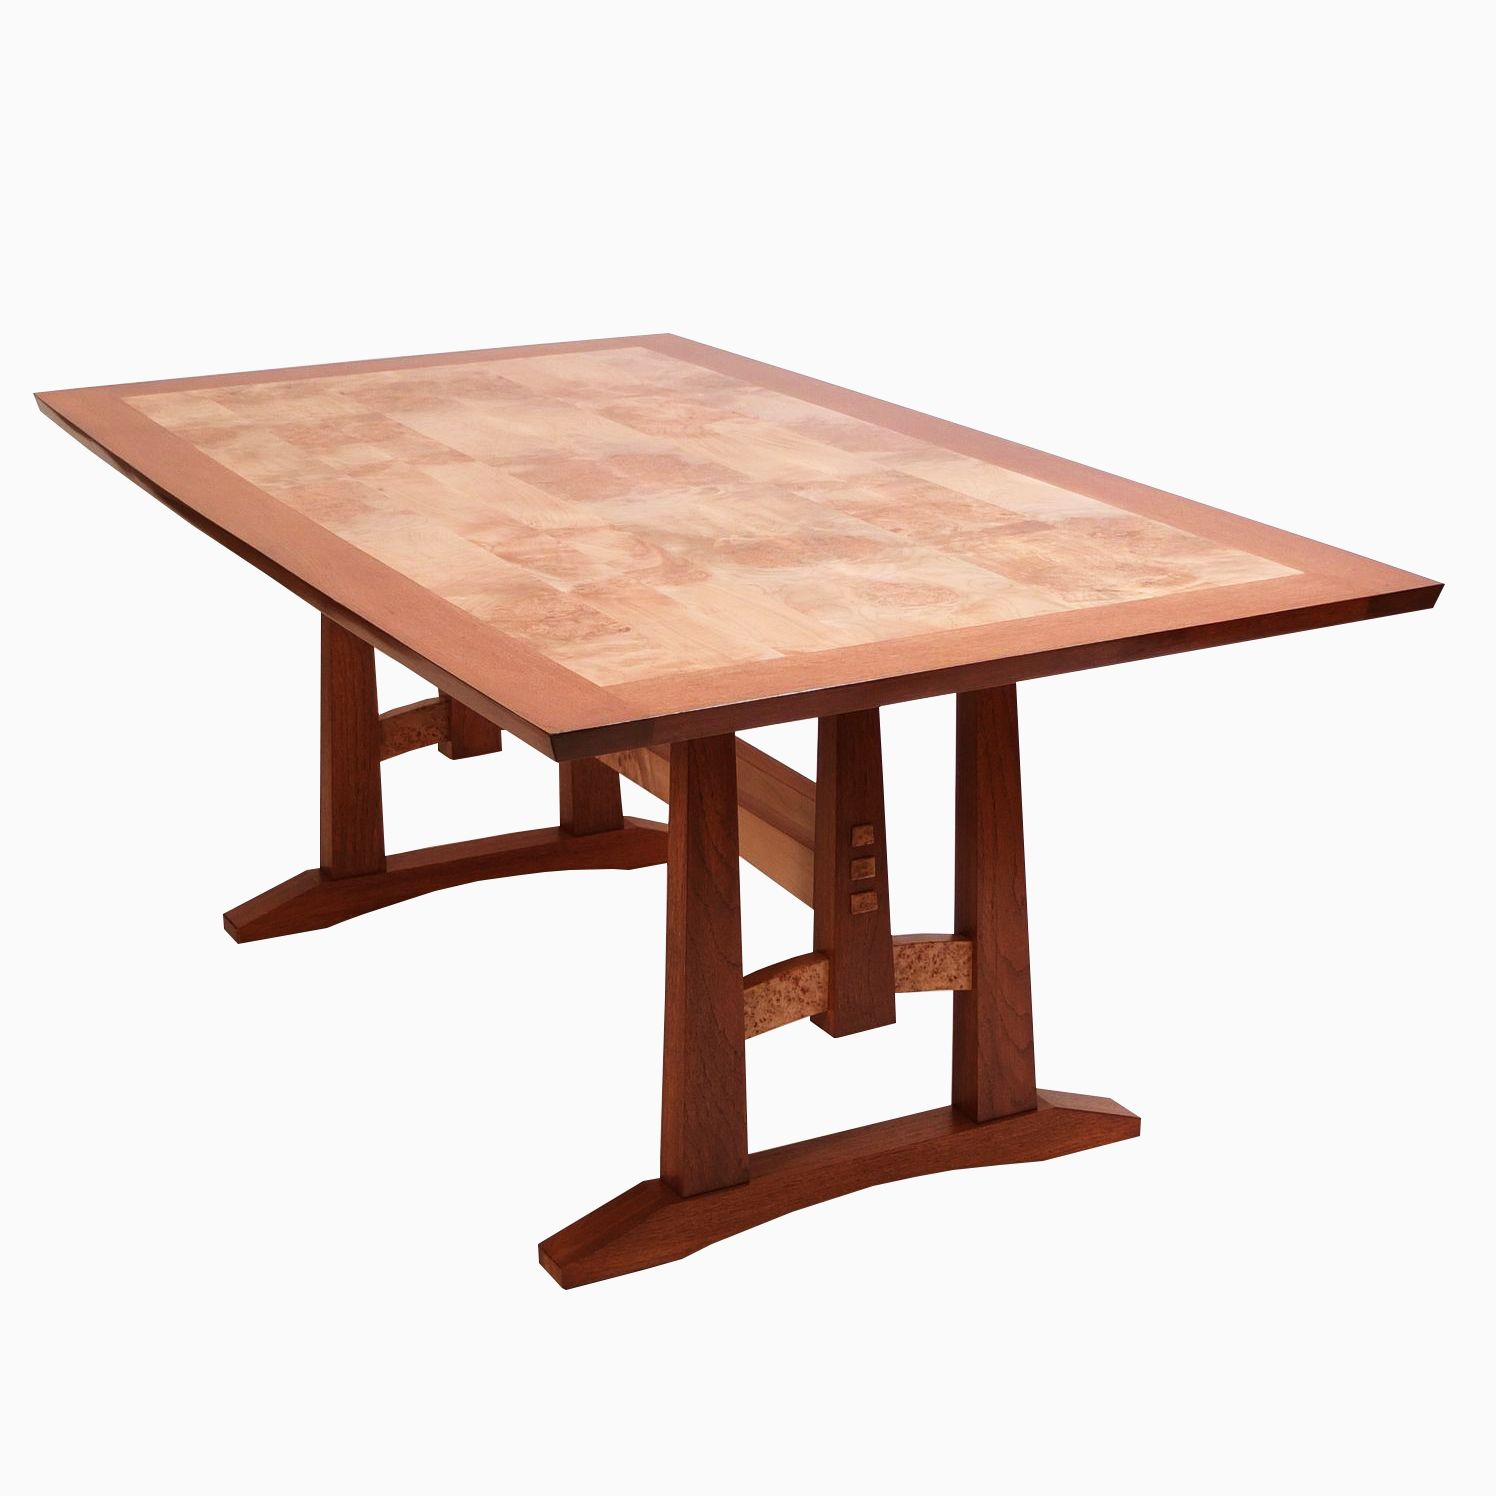 maple kitchen table nook ideas hand crafted oak and burl dining by dogwood design custom made